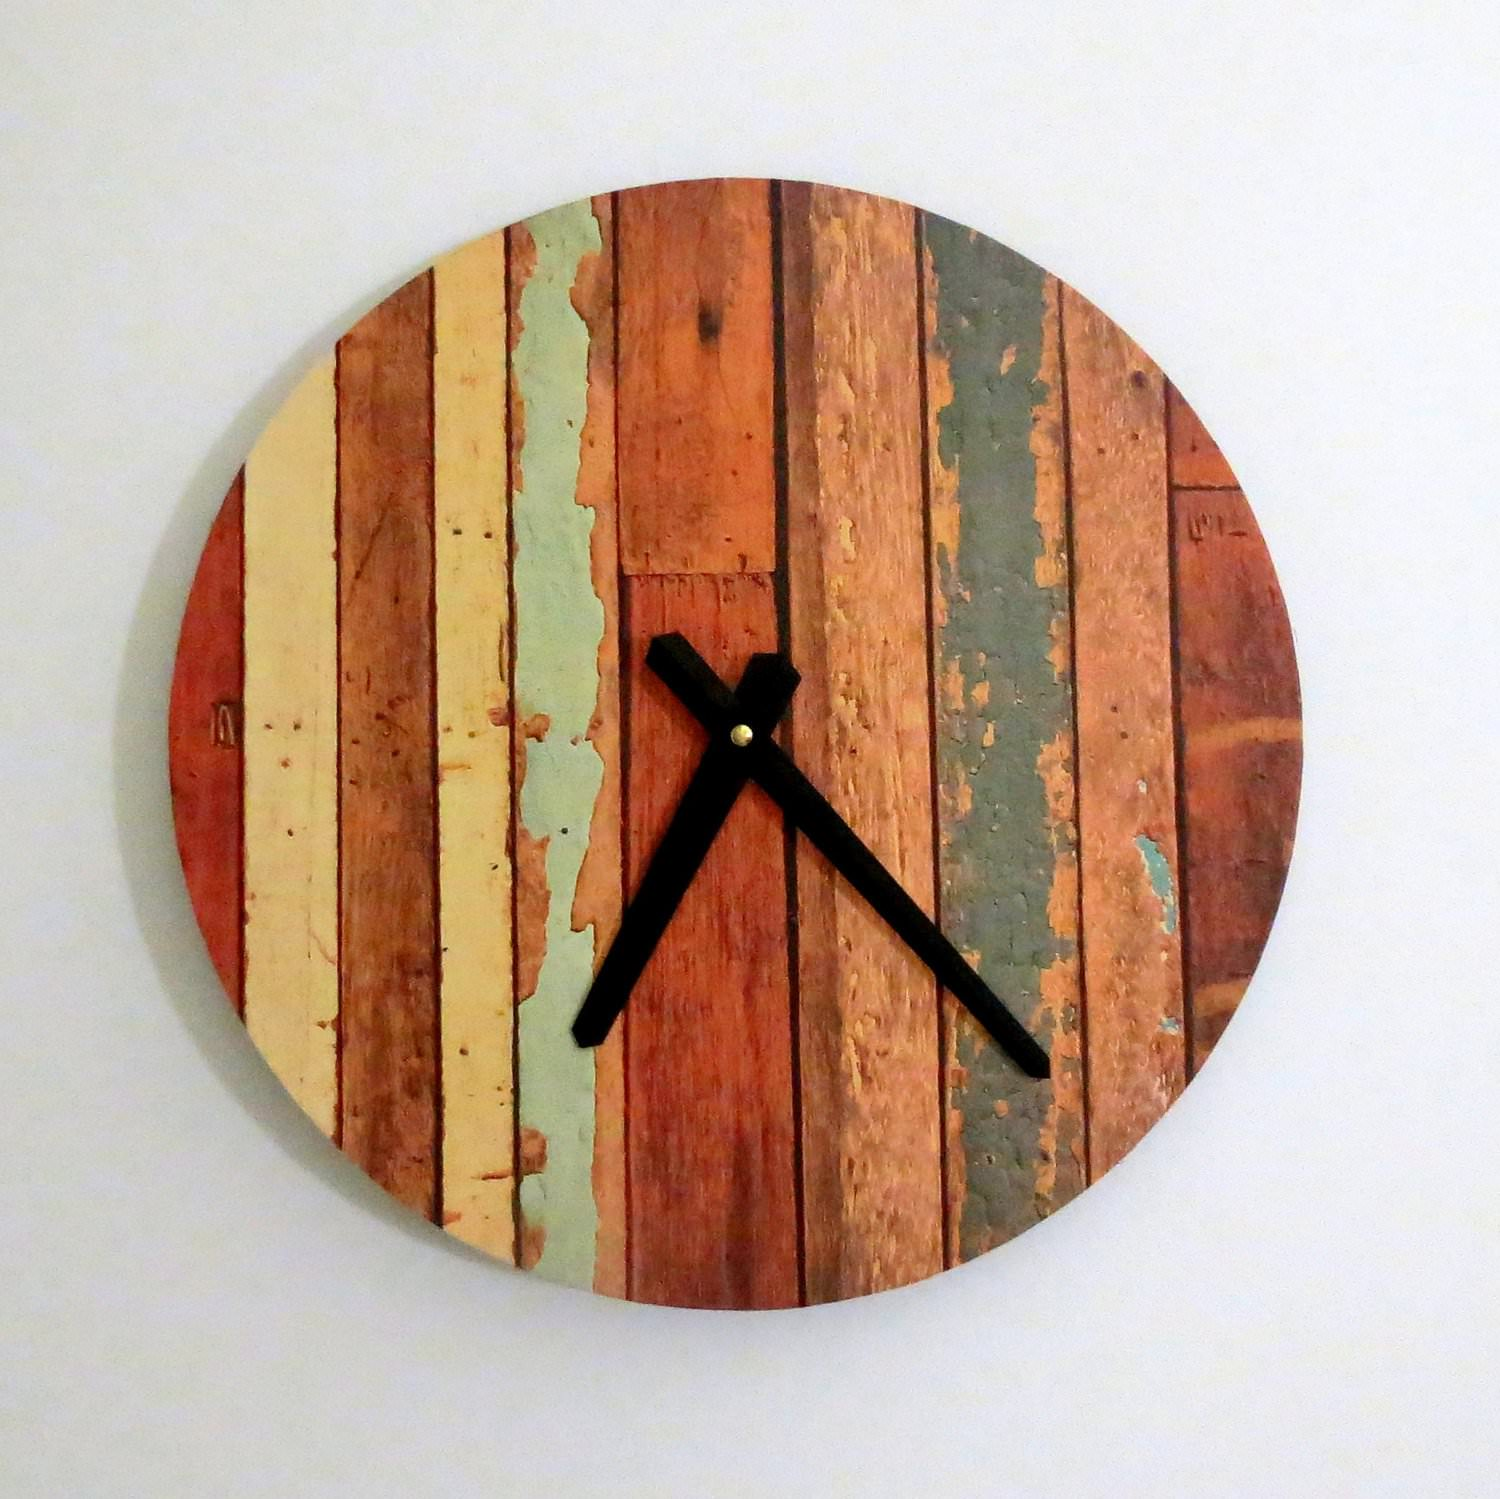 Wall Clock Design Photo : Handmade wall clocks designs design